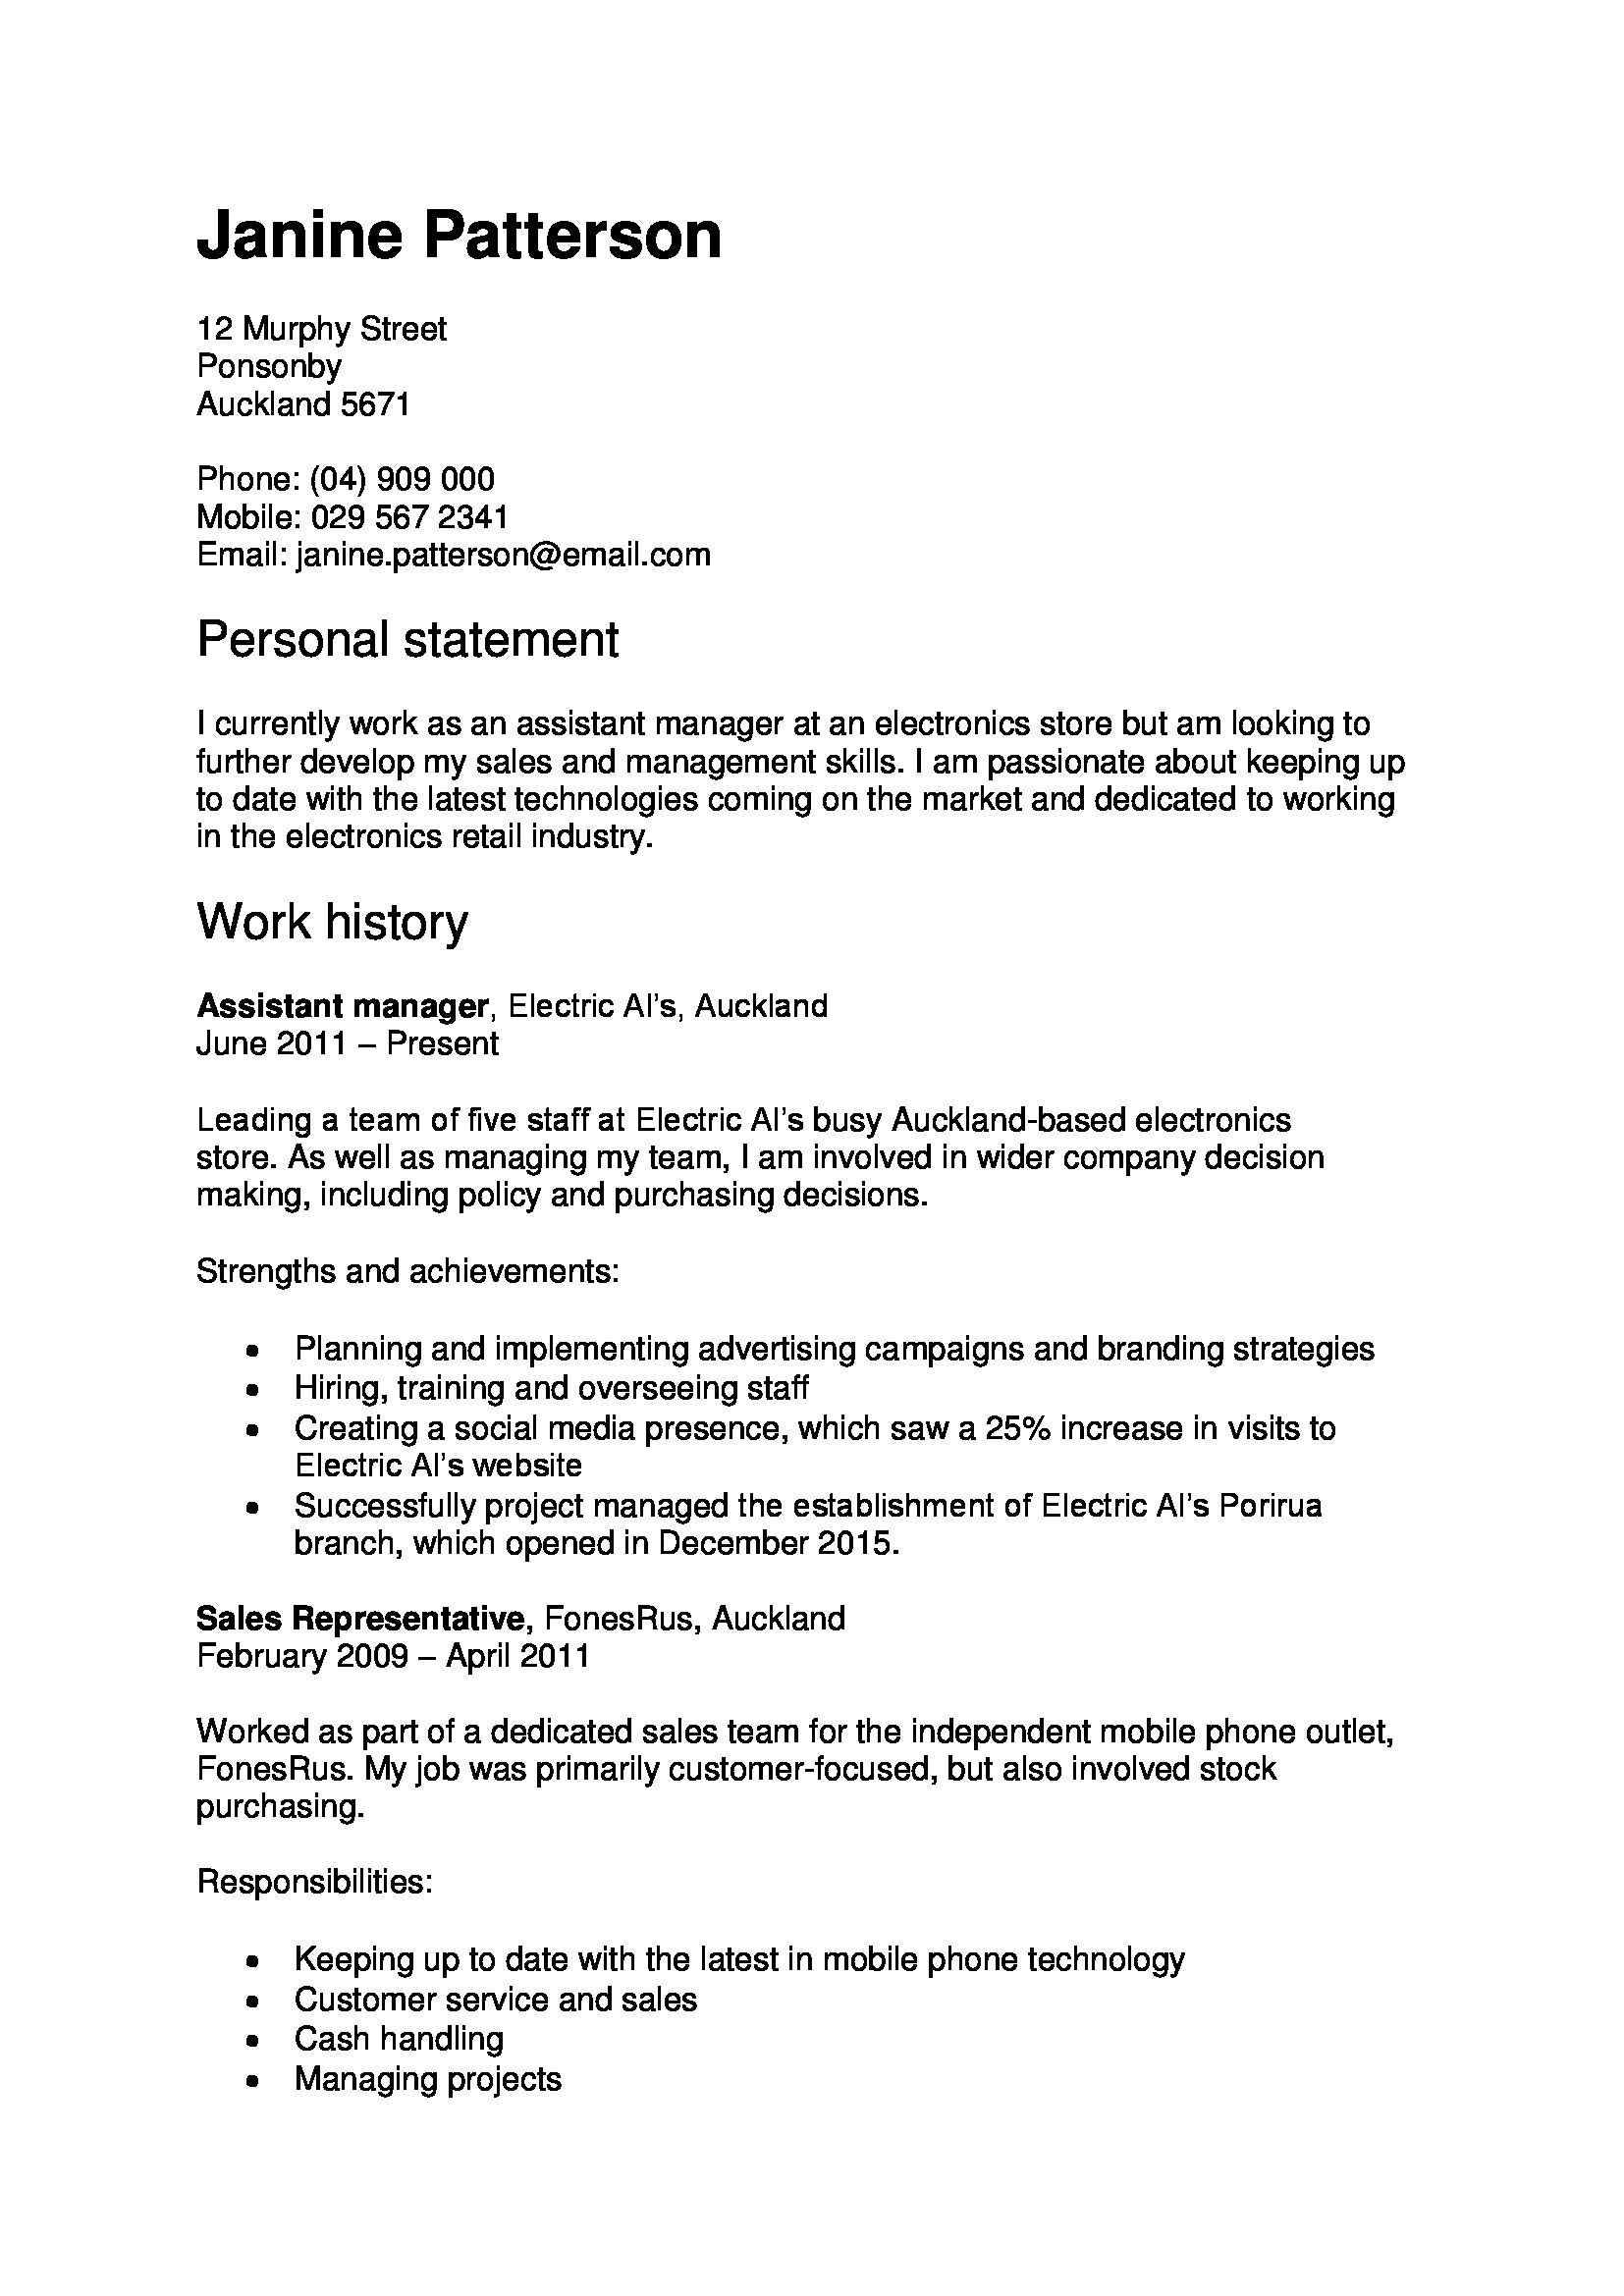 And Cover Letter Templates Example Work Focused  Home Design Idea